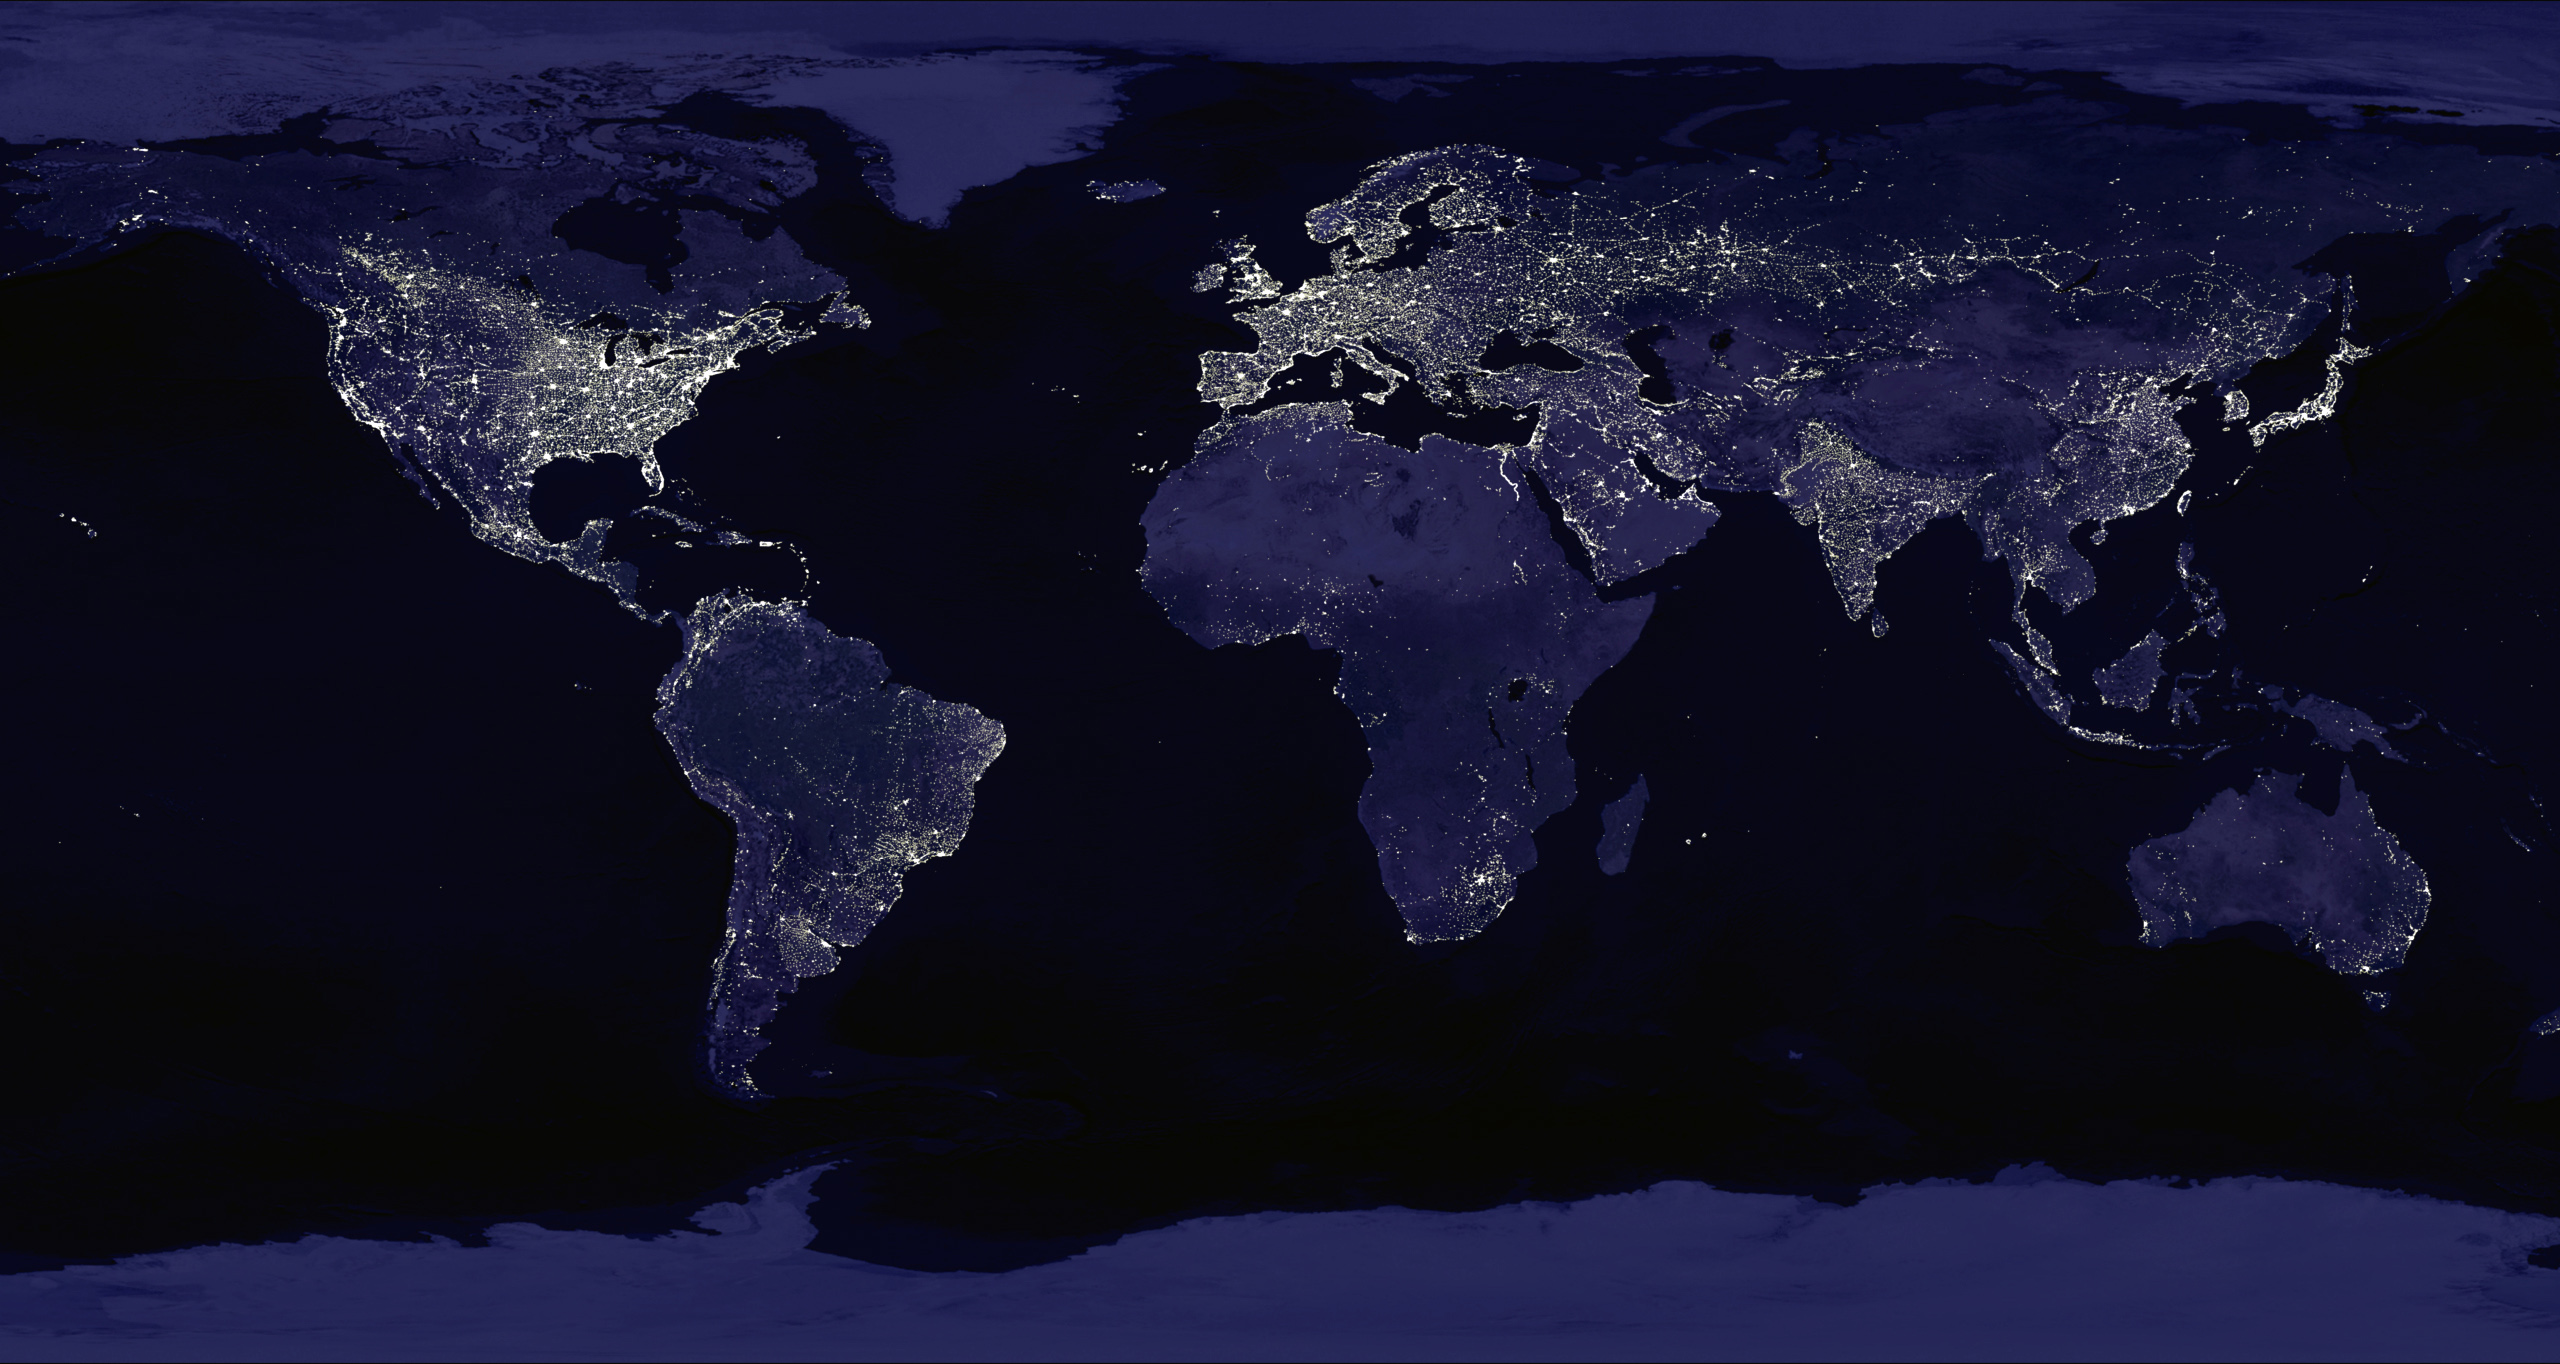 Large map of earth at night world mapsland maps of the world large map of earth at night gumiabroncs Image collections